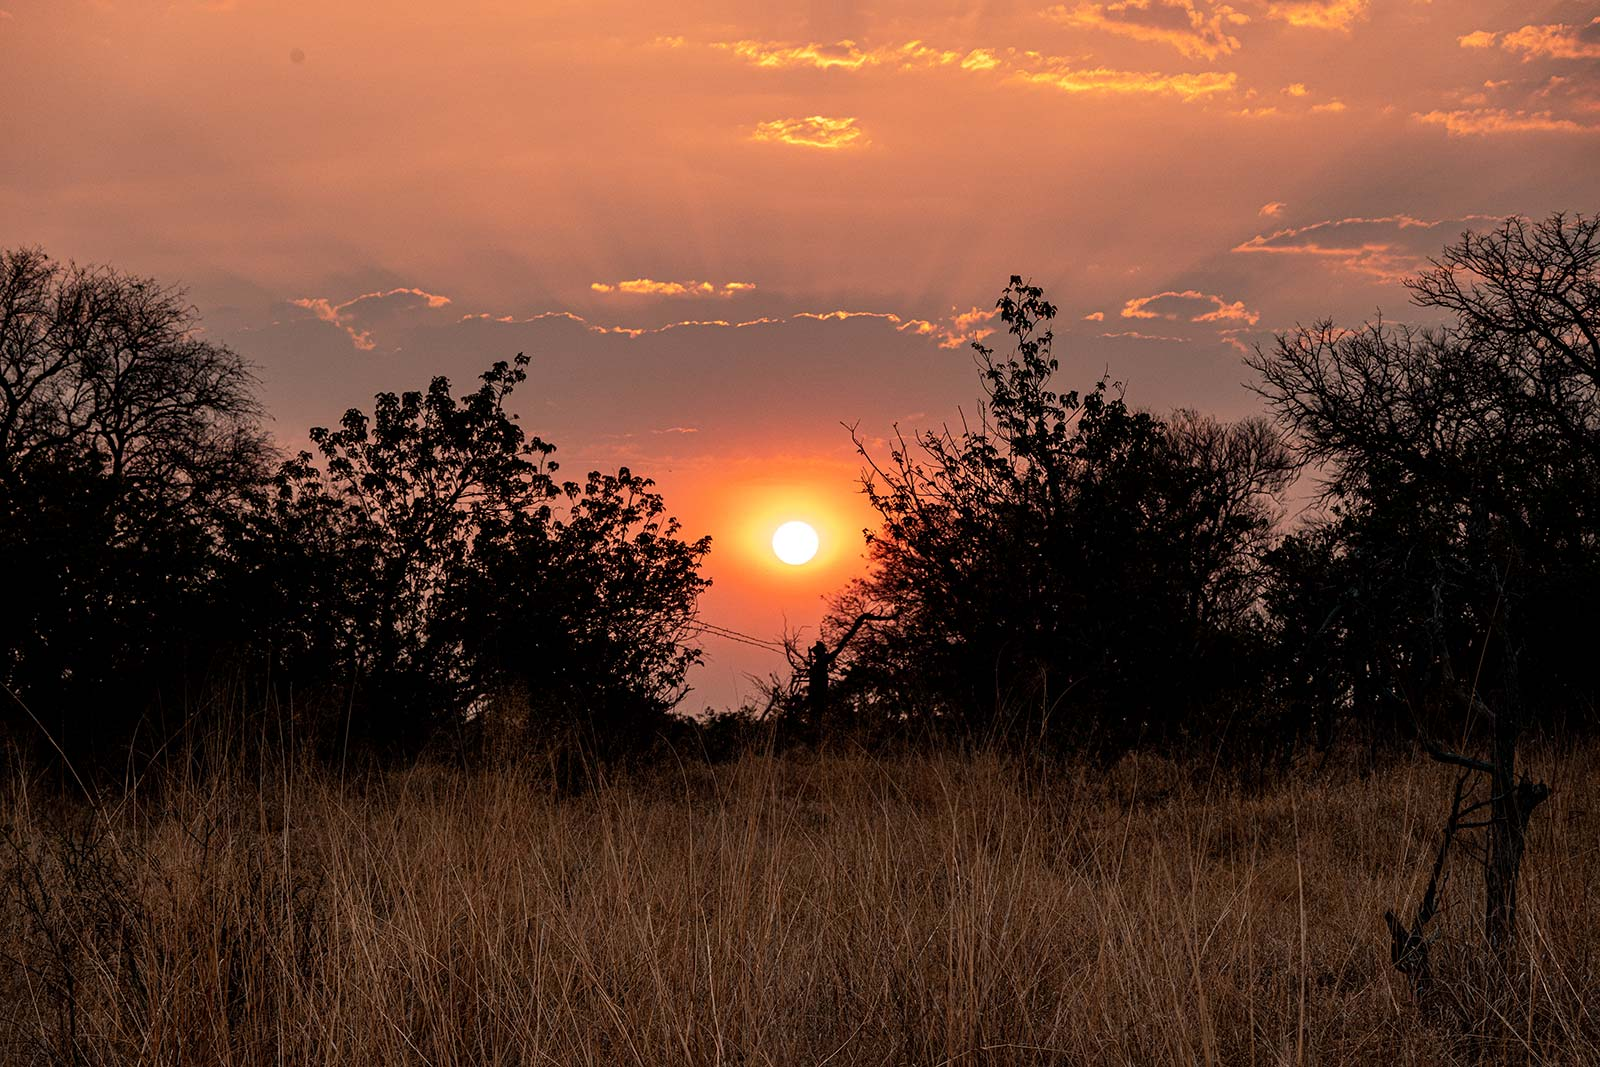 Sunset in Botswana, Africa. Getting chased by a herd of elephants